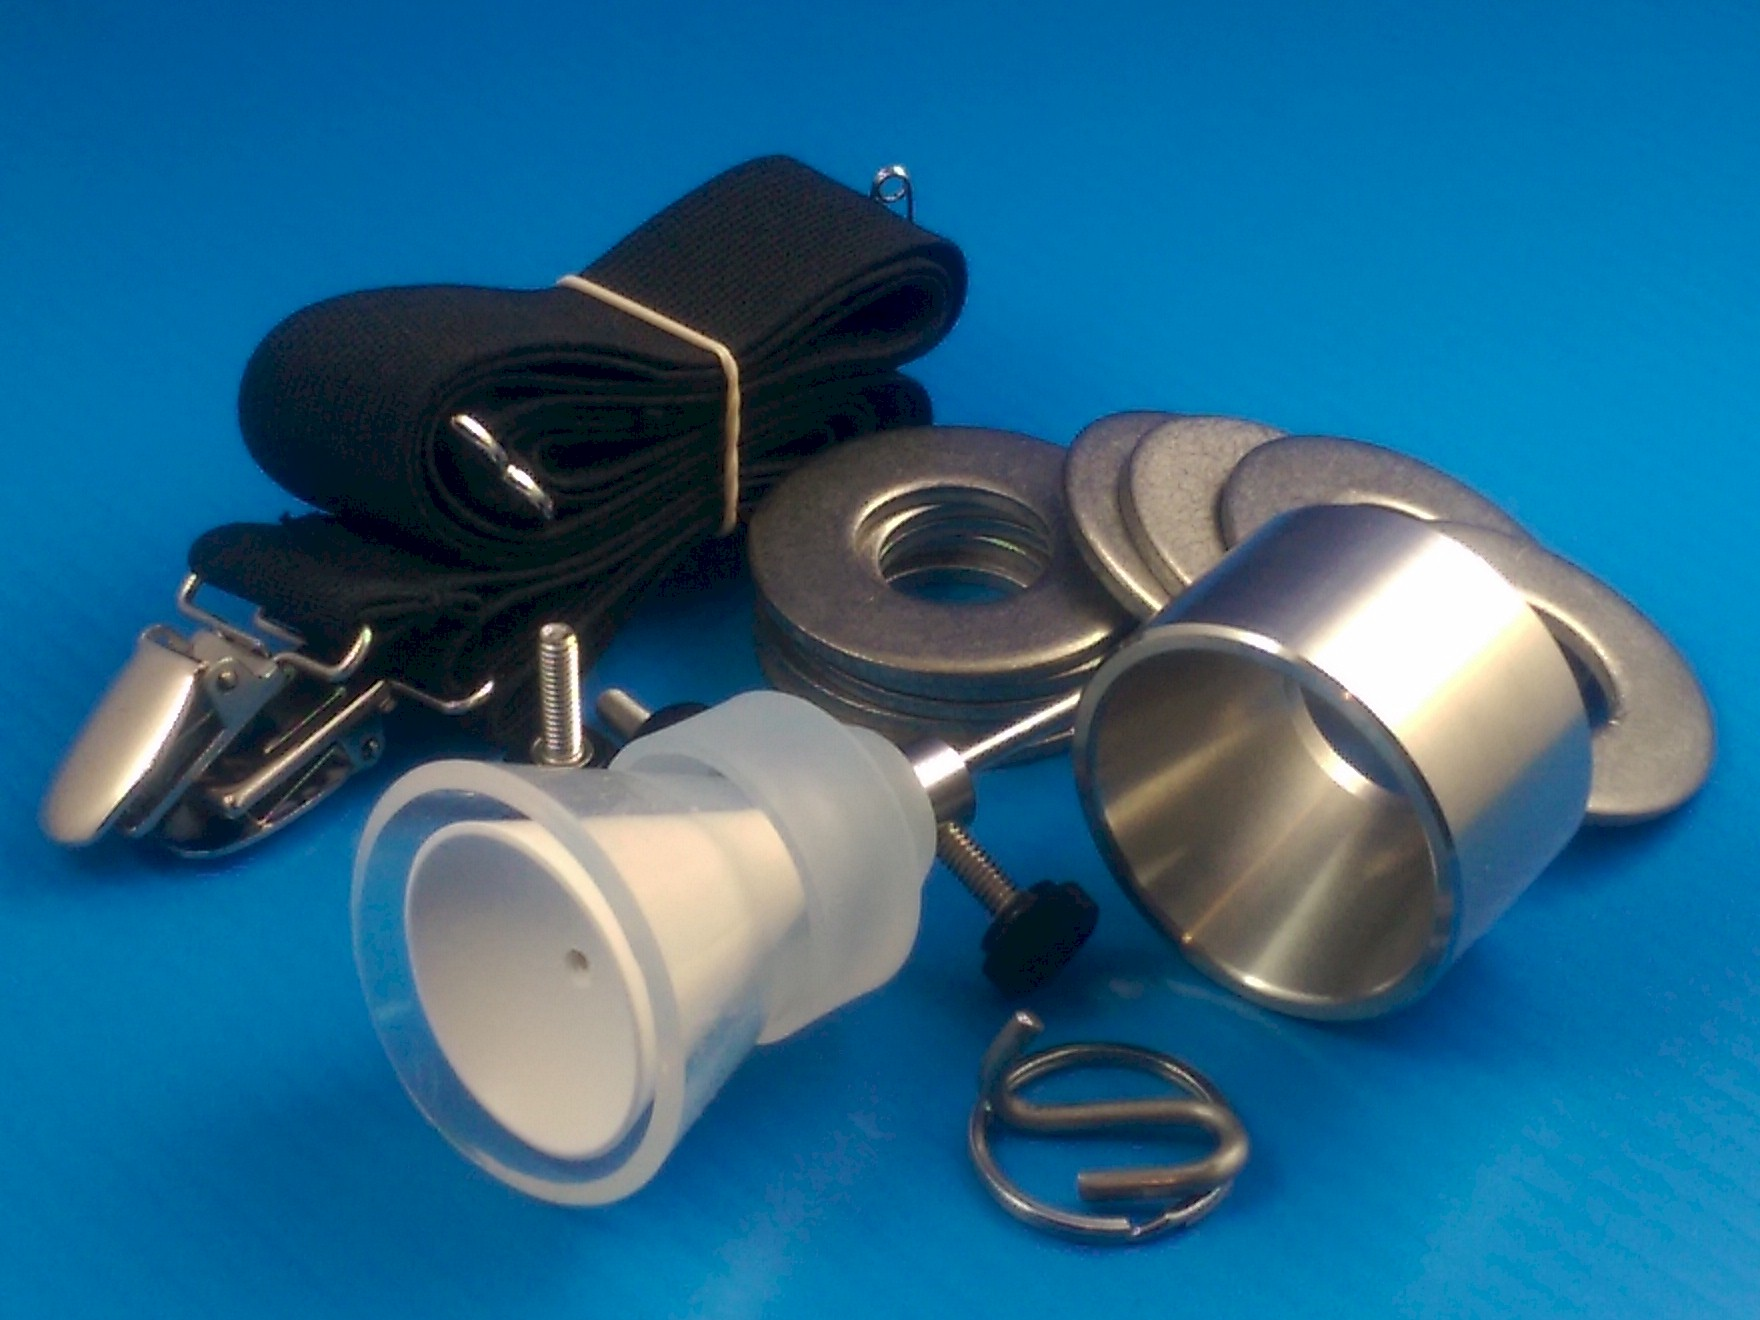 TLC Hanger / weights kit includes 13.5 ounces of stainess weights, retaining Cuff, strap, SGX clip, and Collar